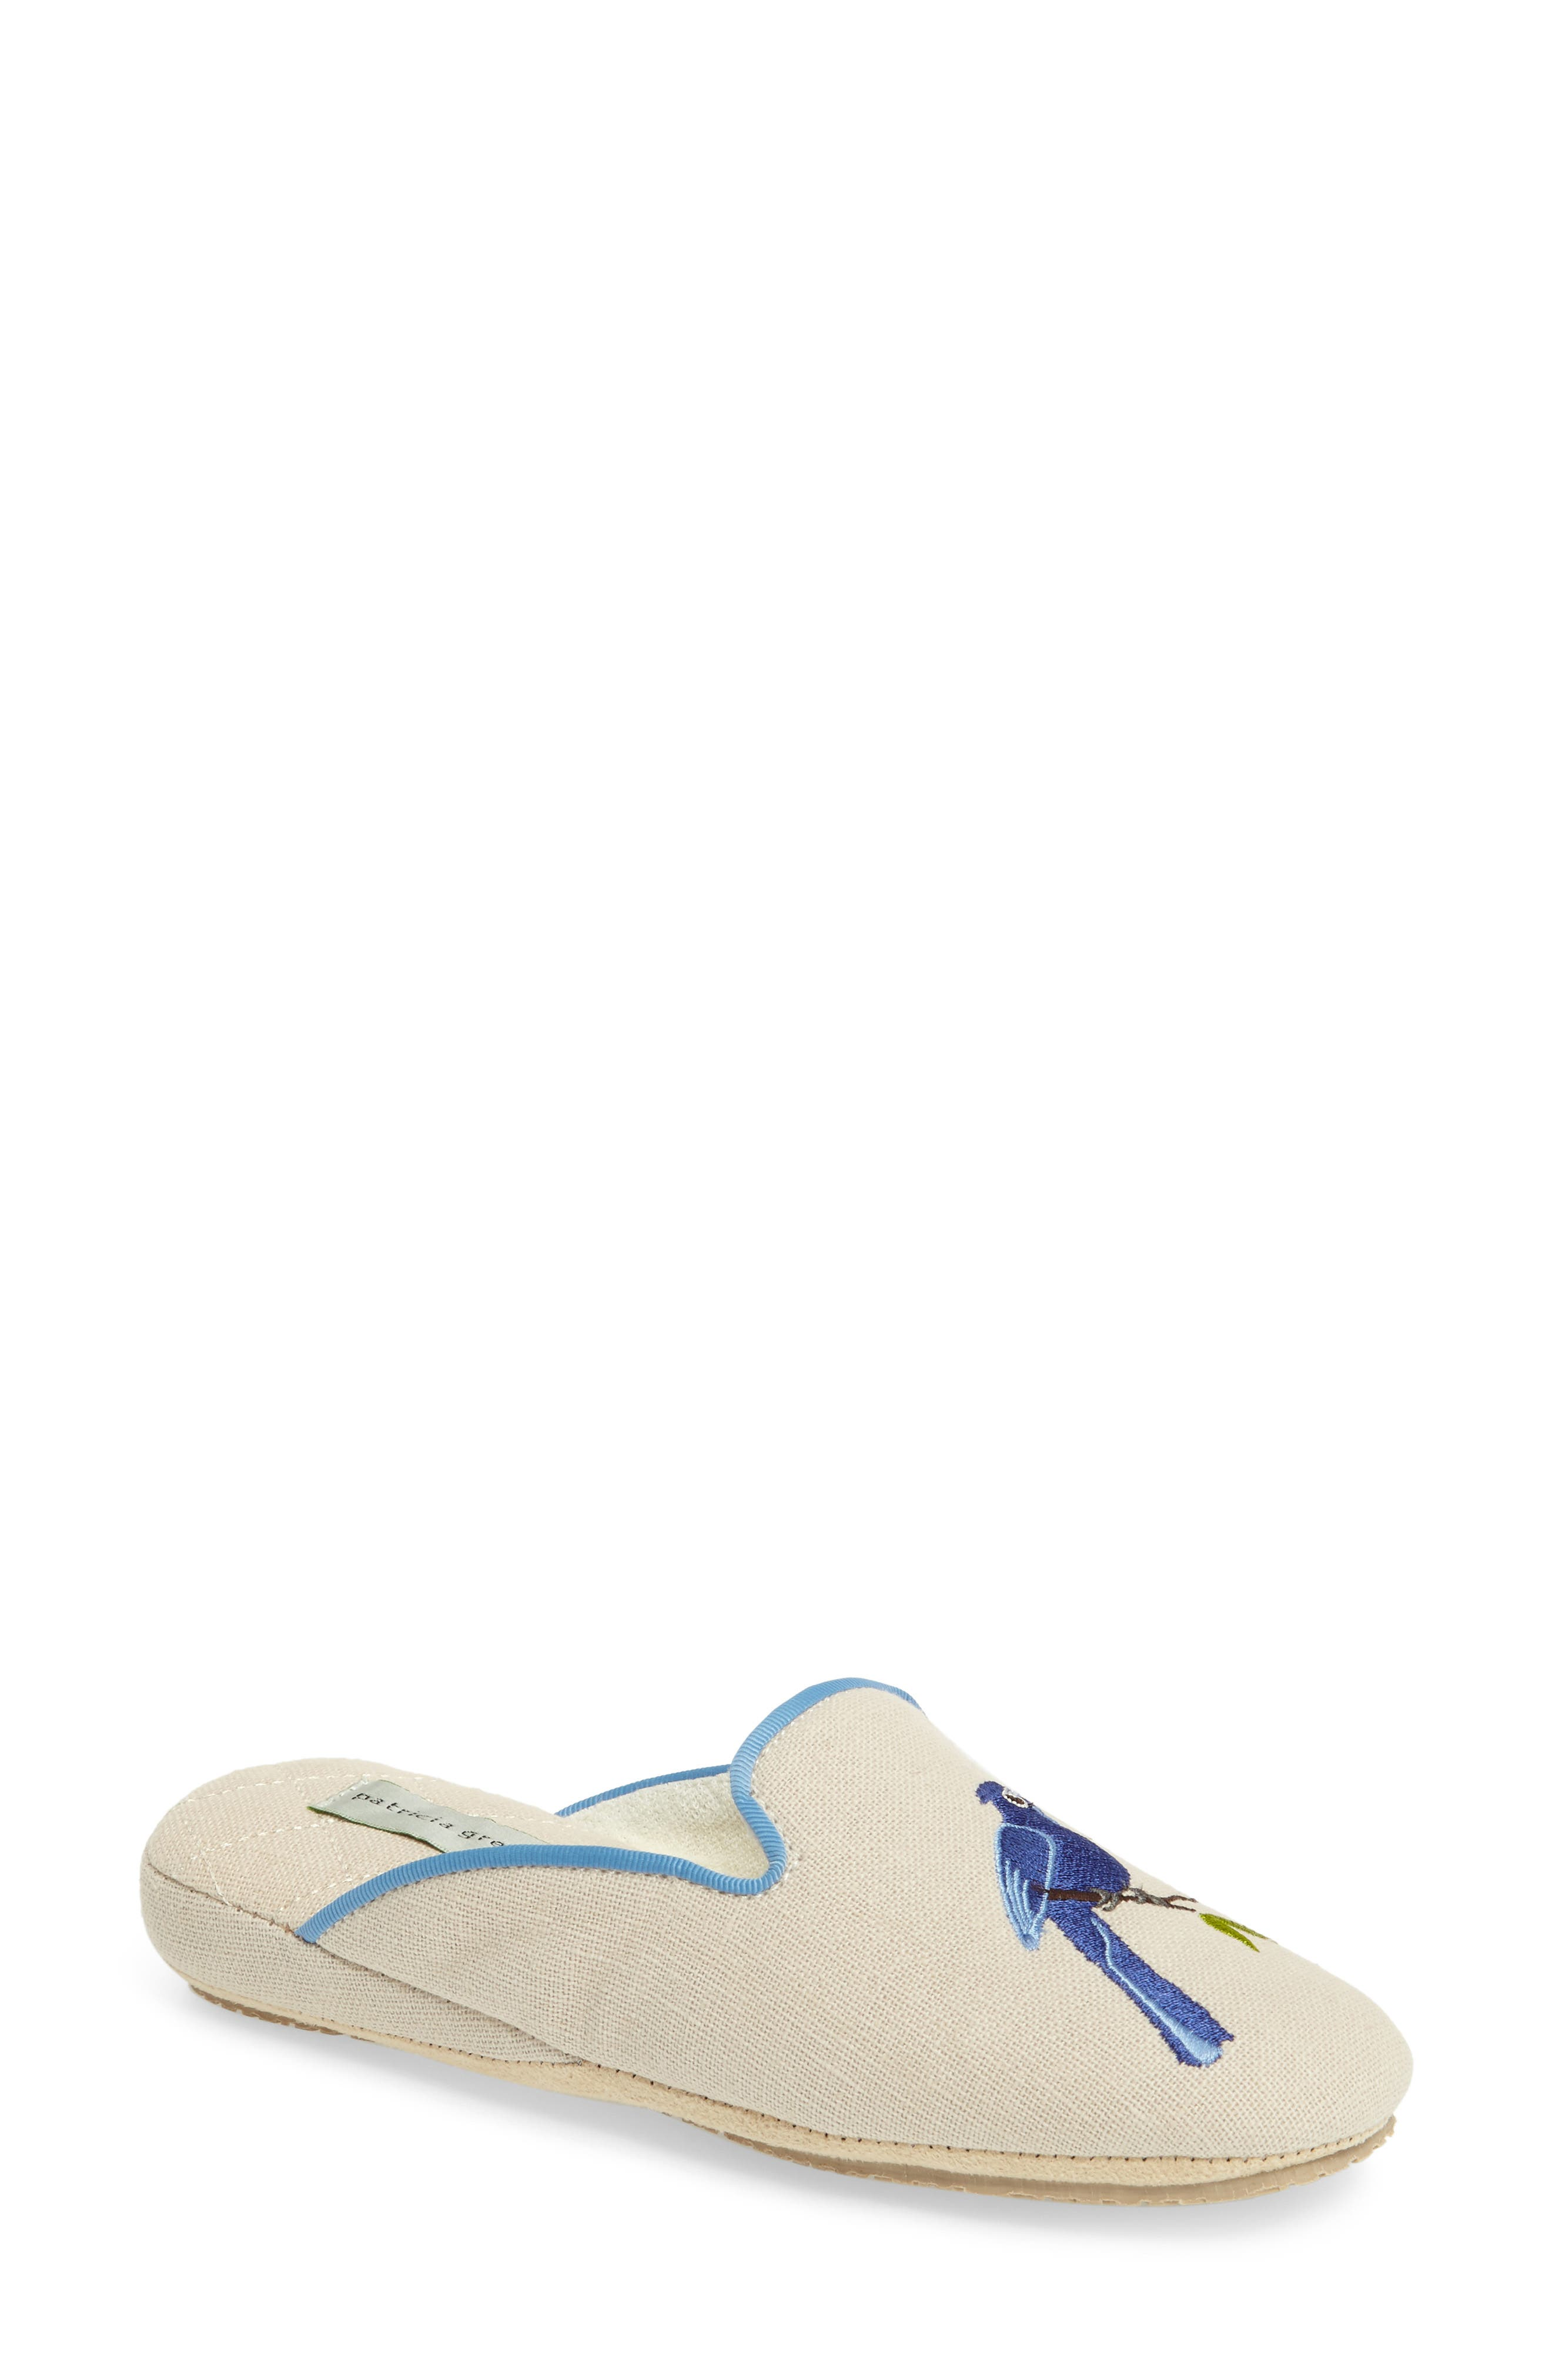 Bluebird Embroidered Slipper,                         Main,                         color, 255